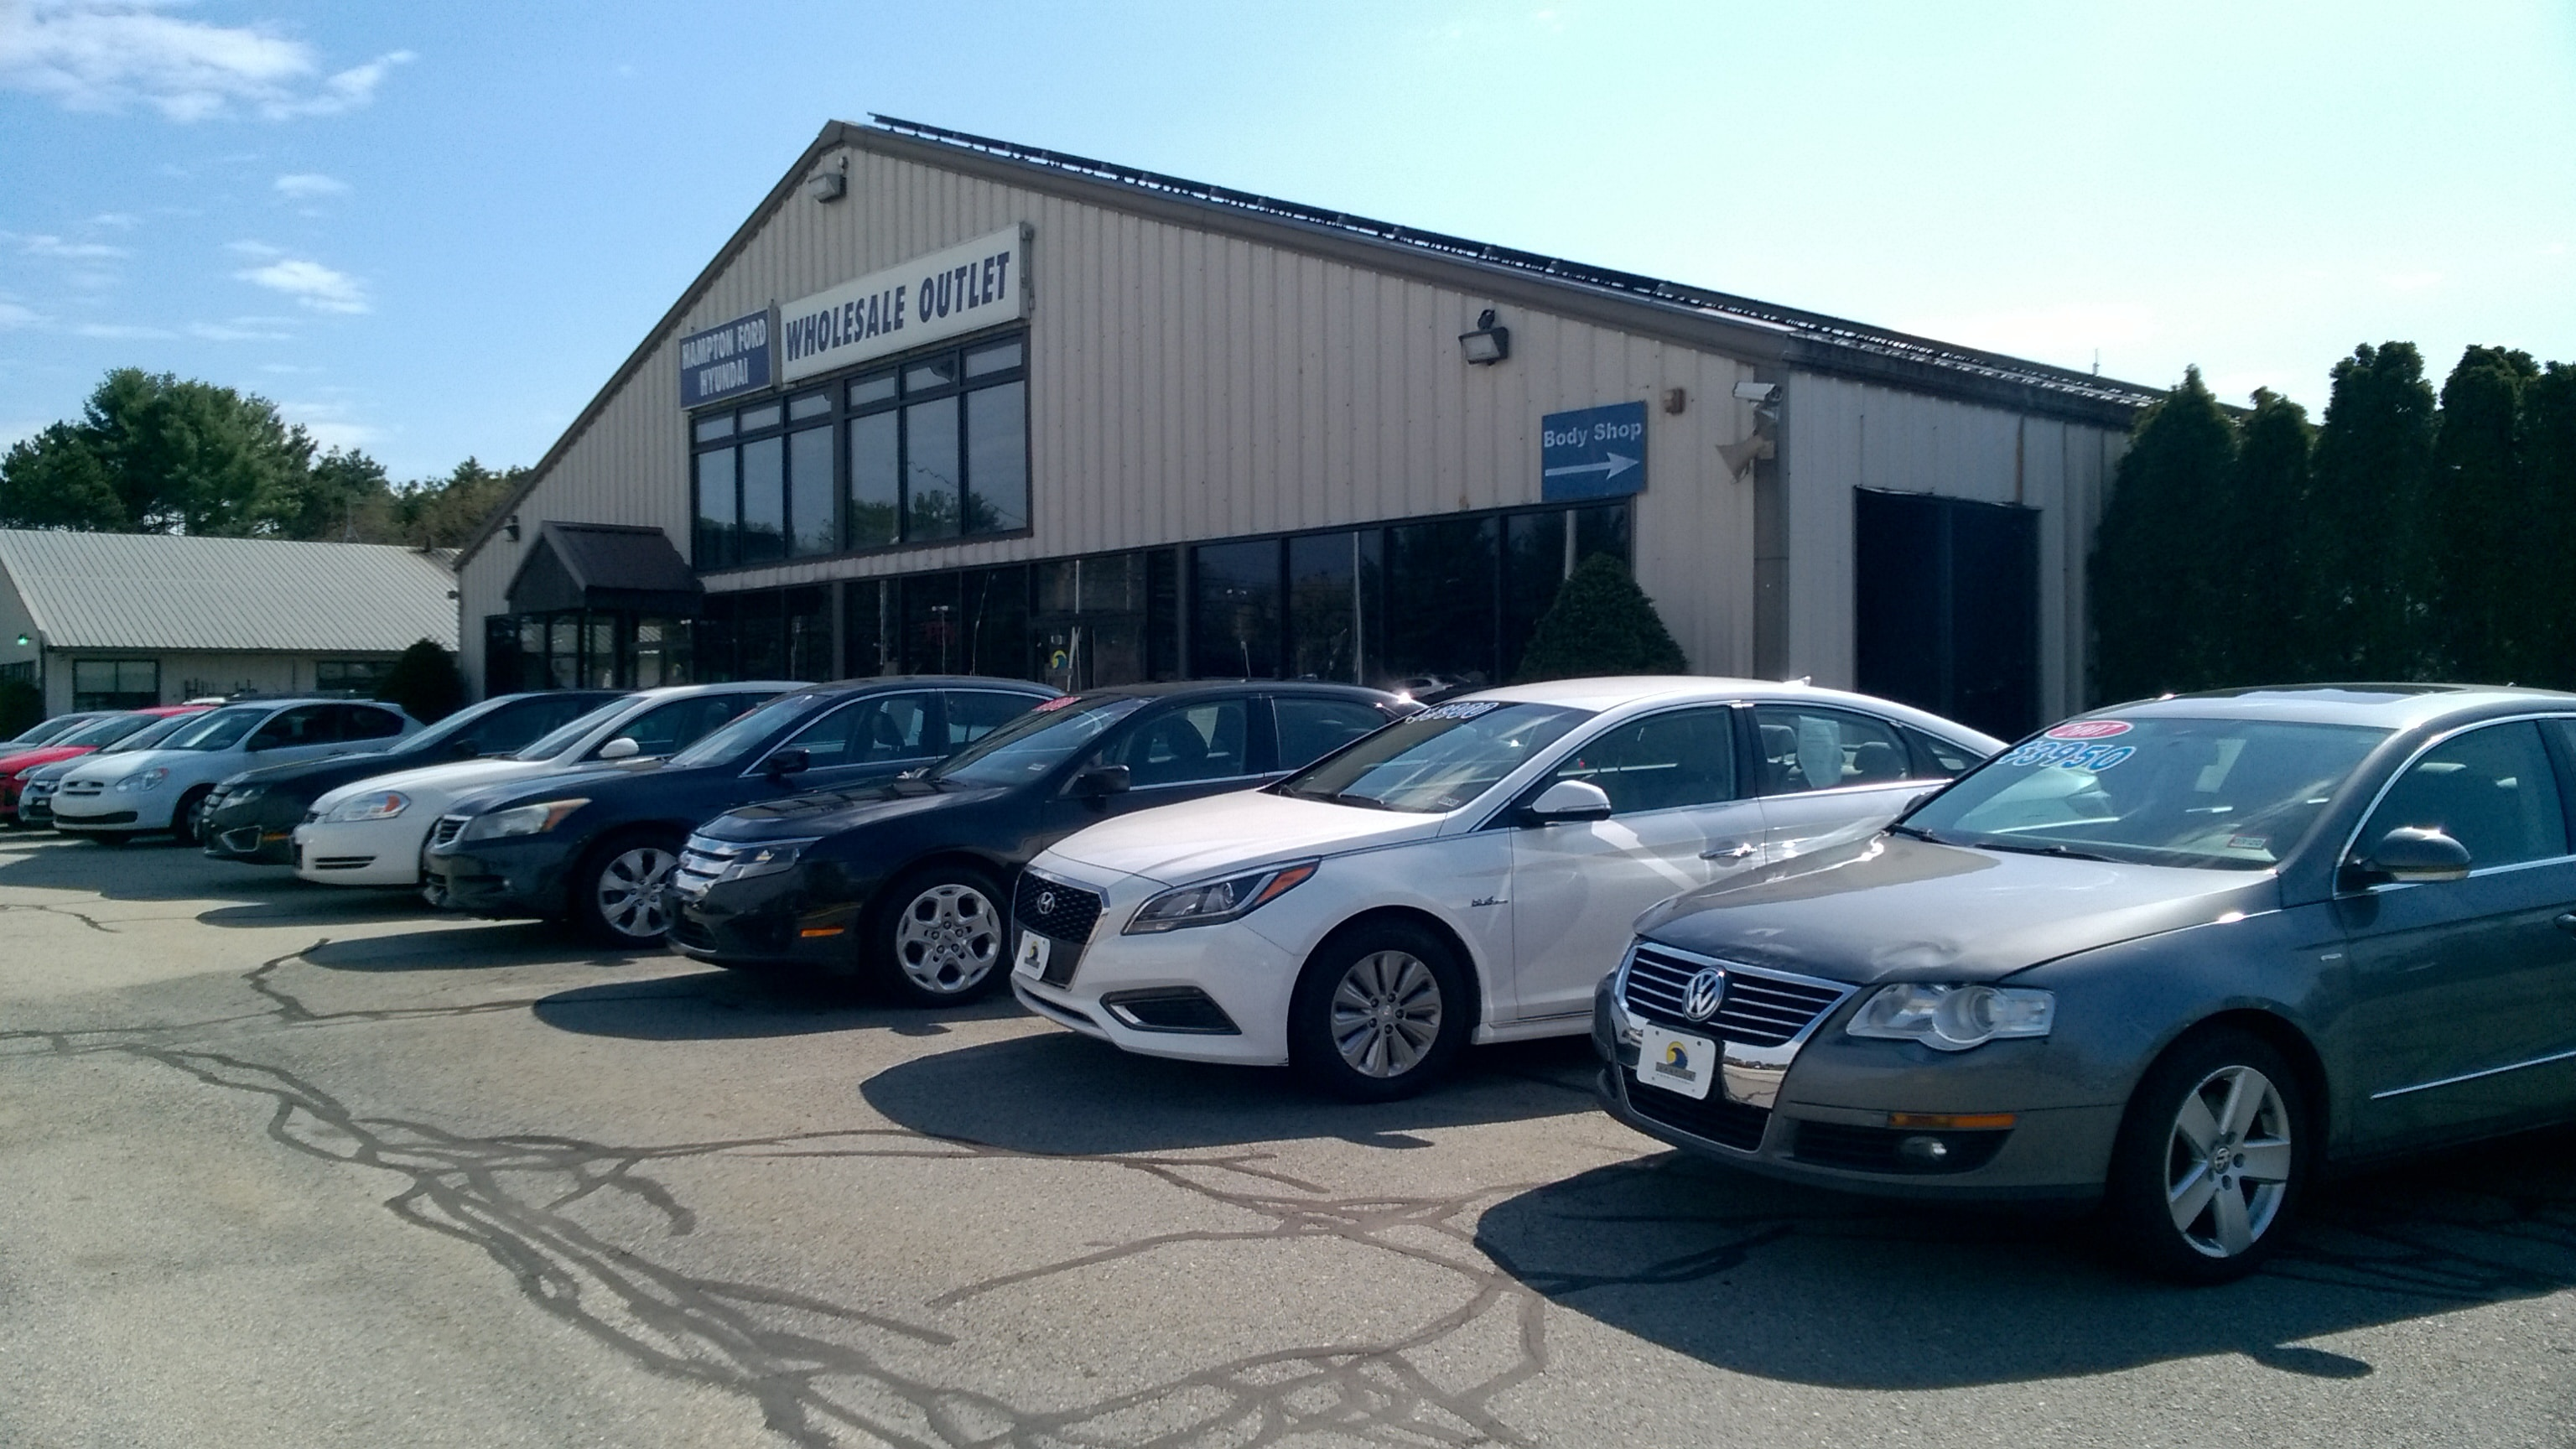 Hampton Ford Hyundai Wholesale Outlet Front of Building with Selection of Wholesale Vehicle Inventory